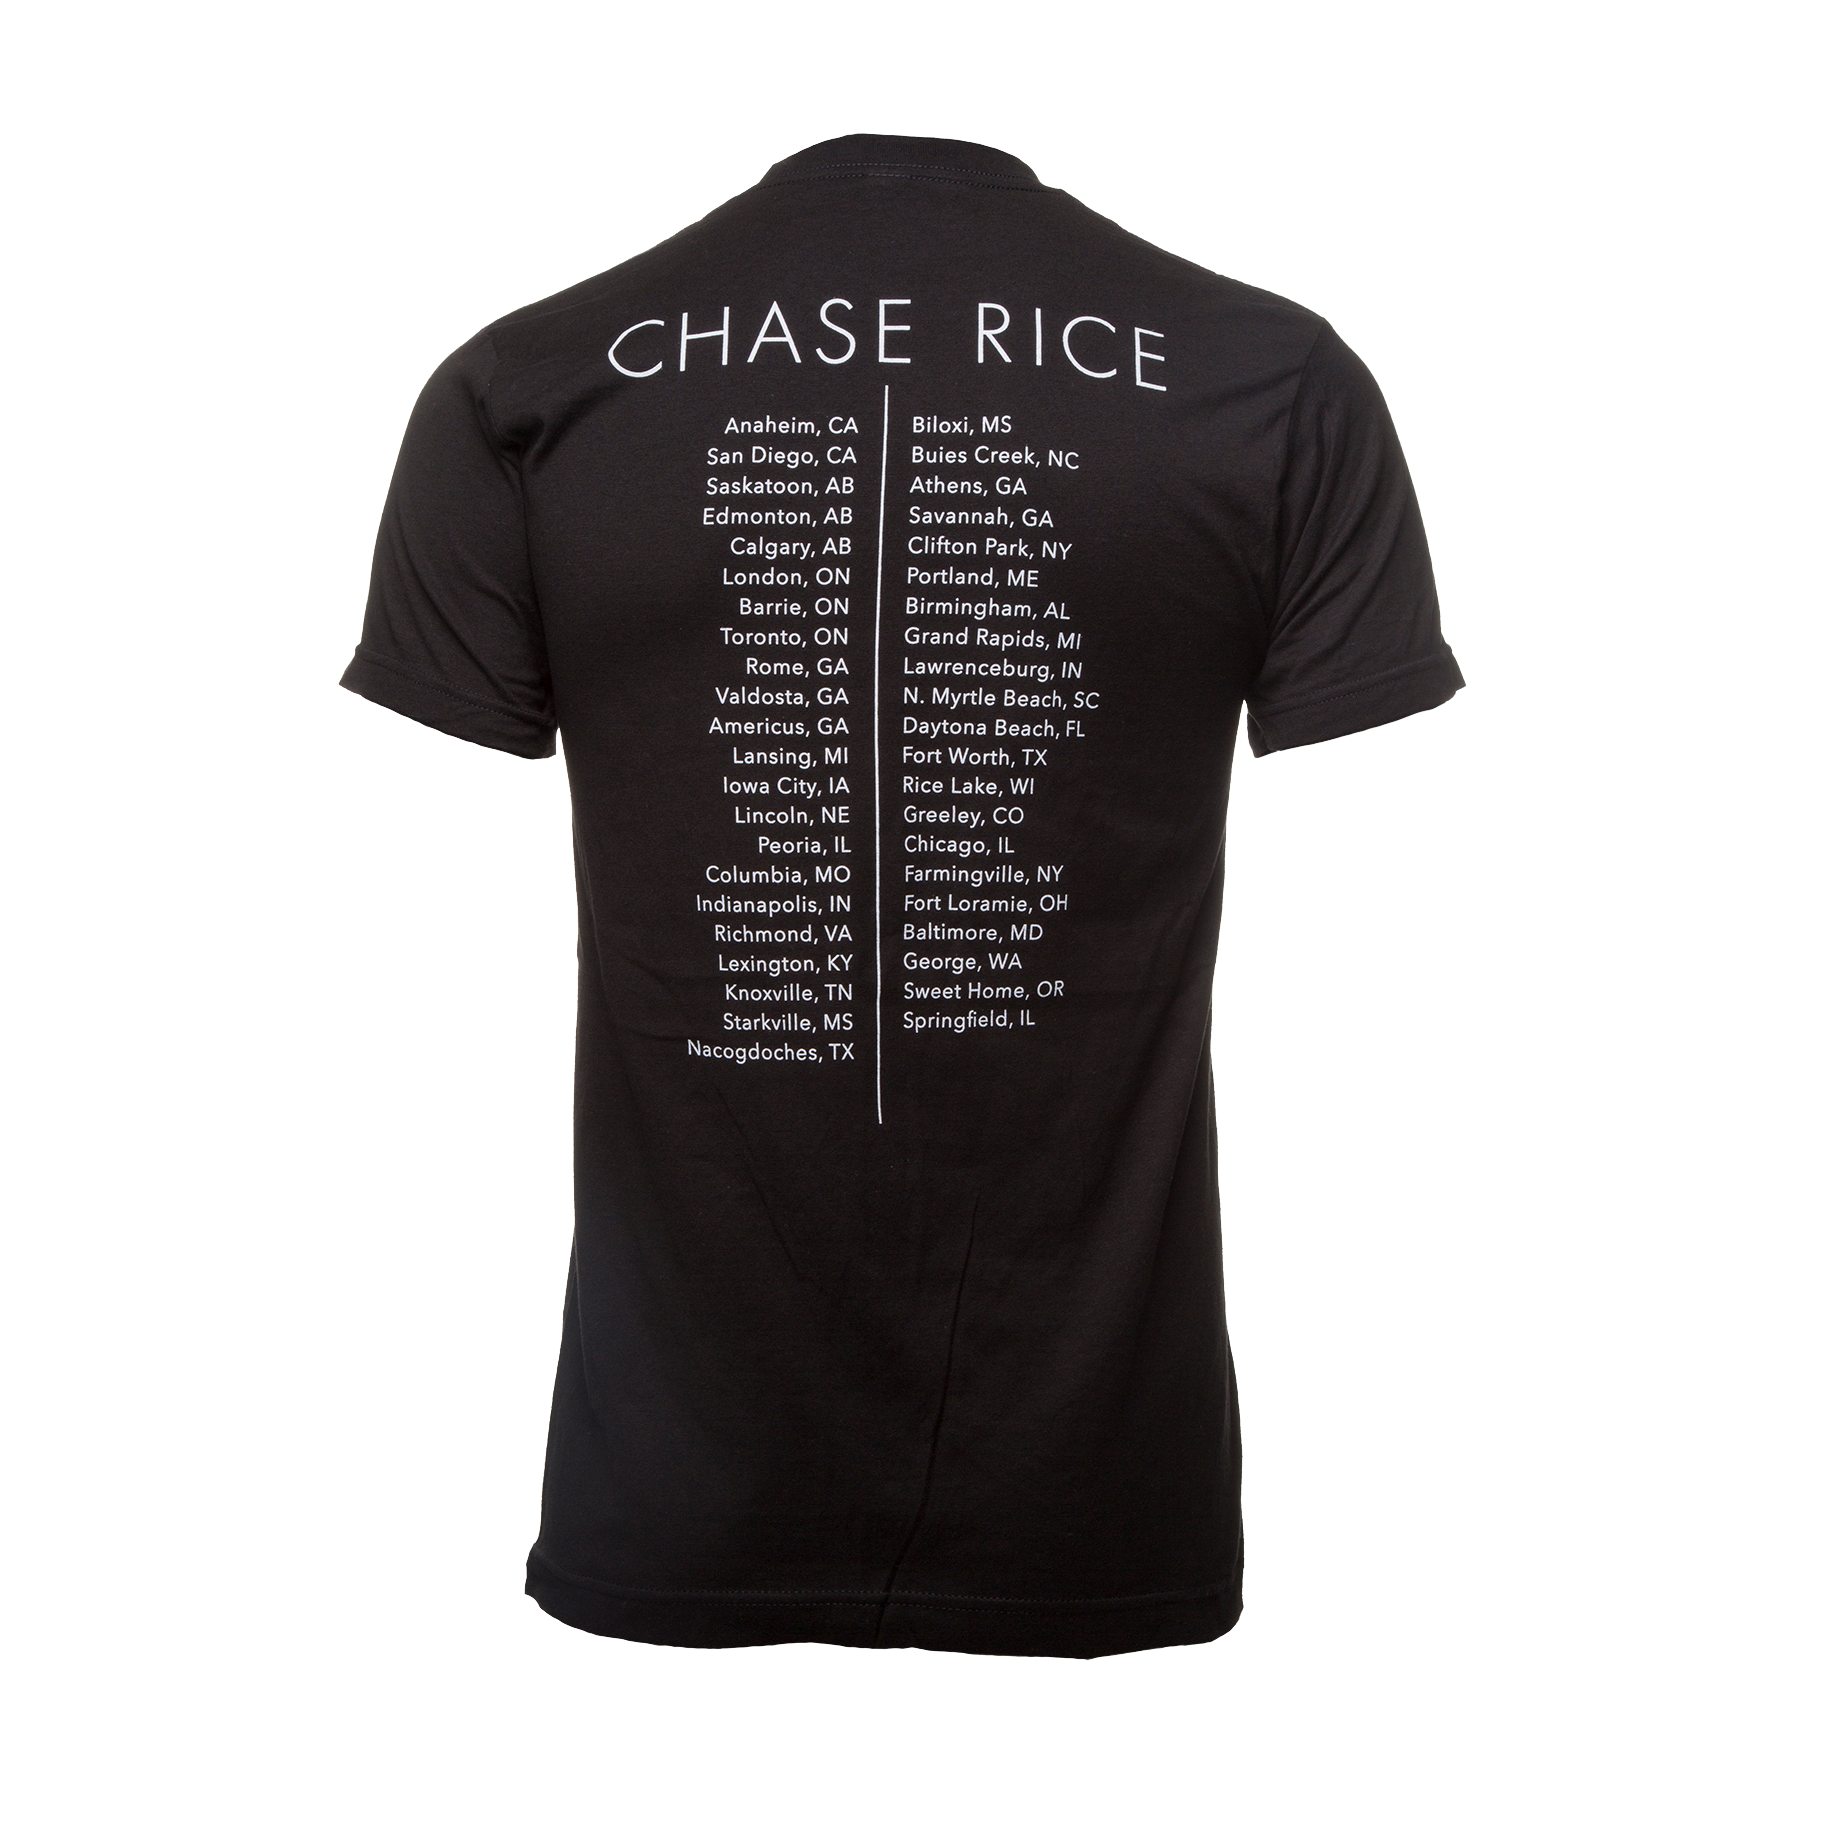 Chase Rice 2017 Tour Tee